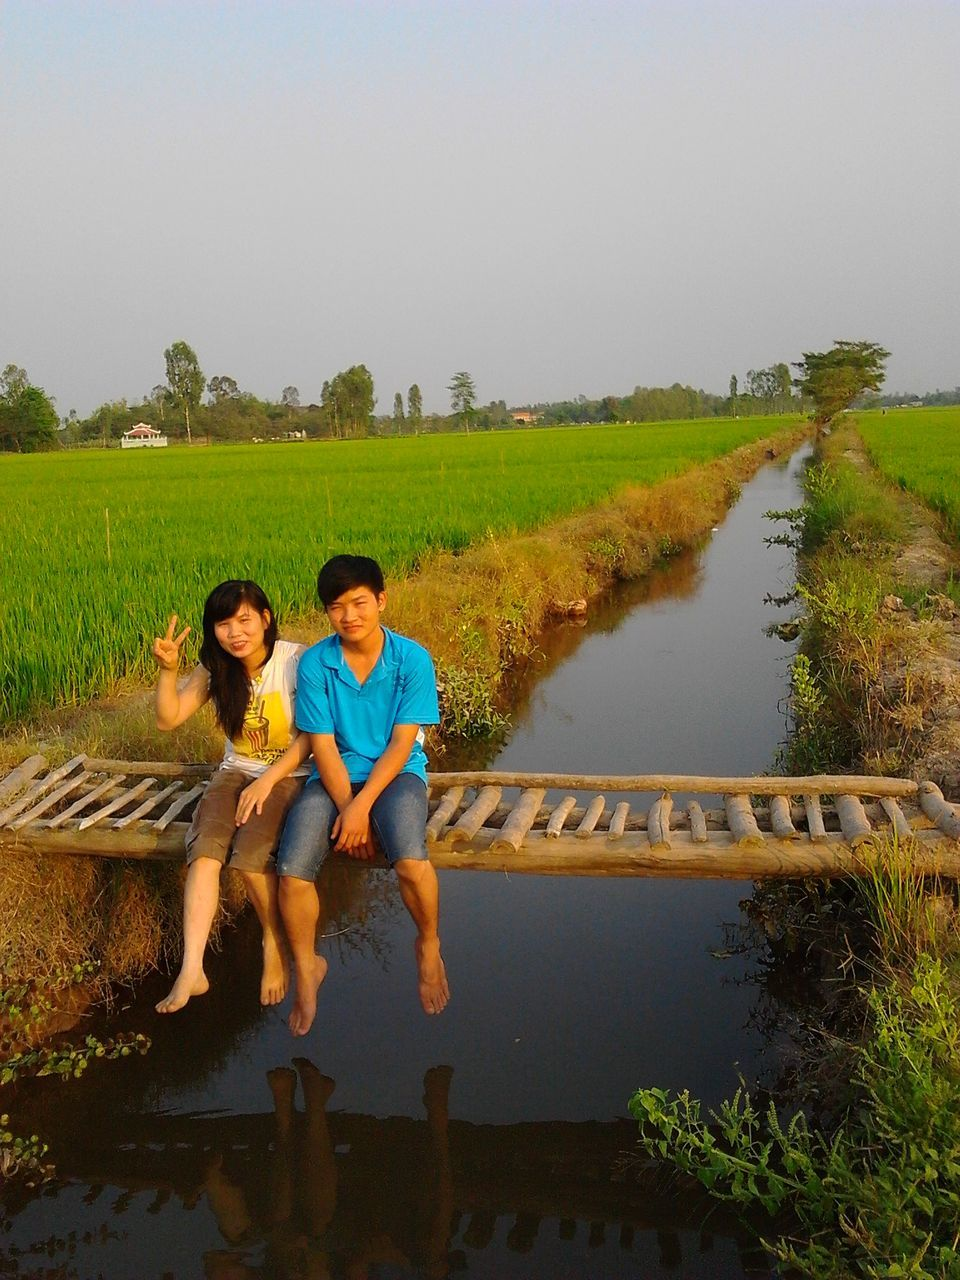 full length, two people, real people, togetherness, casual clothing, outdoors, plant, day, field, leisure activity, water, growth, nature, agriculture, grass, young men, sitting, clear sky, boys, lifestyles, bonding, landscape, young adult, young women, sky, men, tree, people